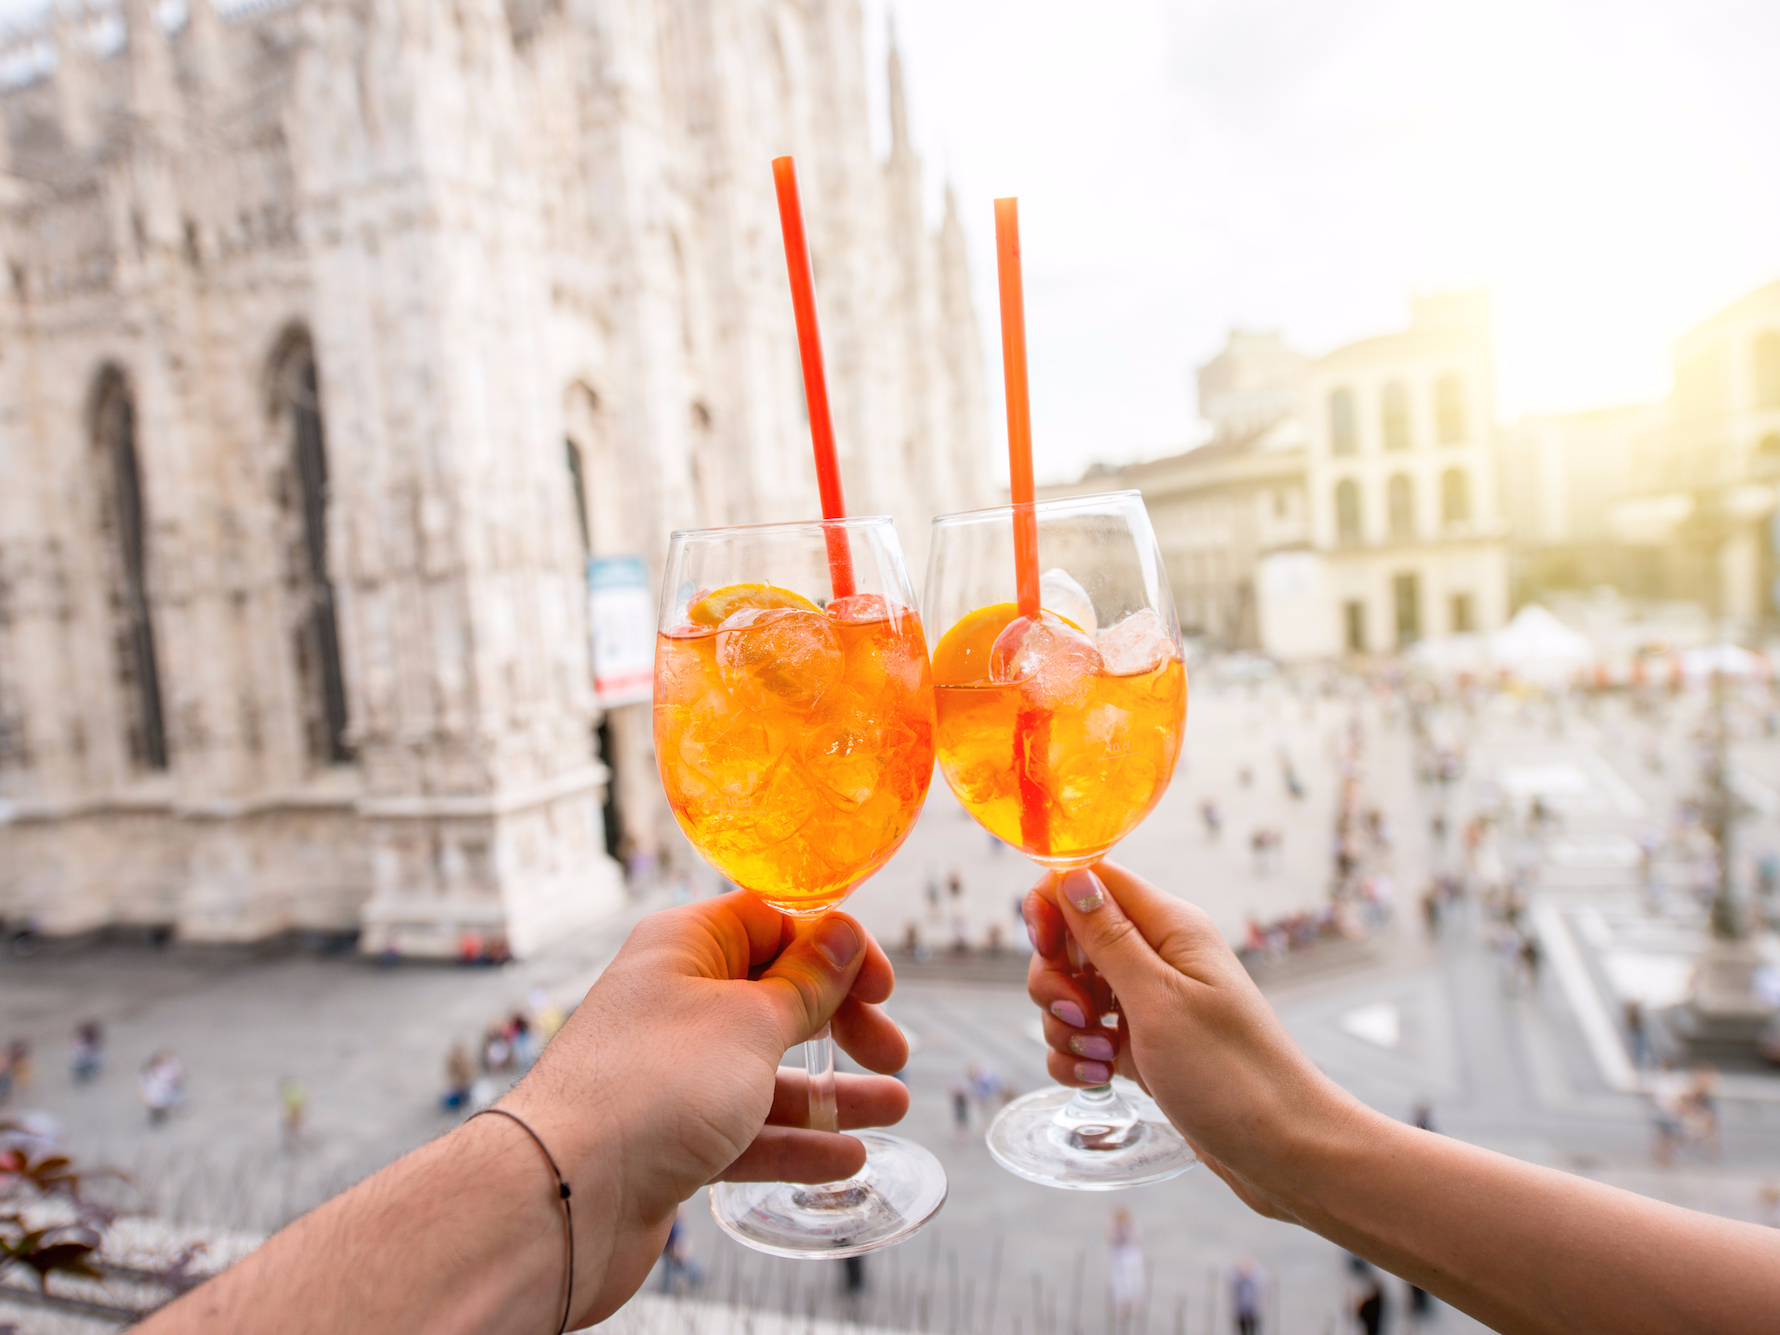 Lidl Is Selling A Drink Almost Identical To Aperol Called Bitterol For Half The Price Of The Real Thing Aperol Aperol Spritz Lidl